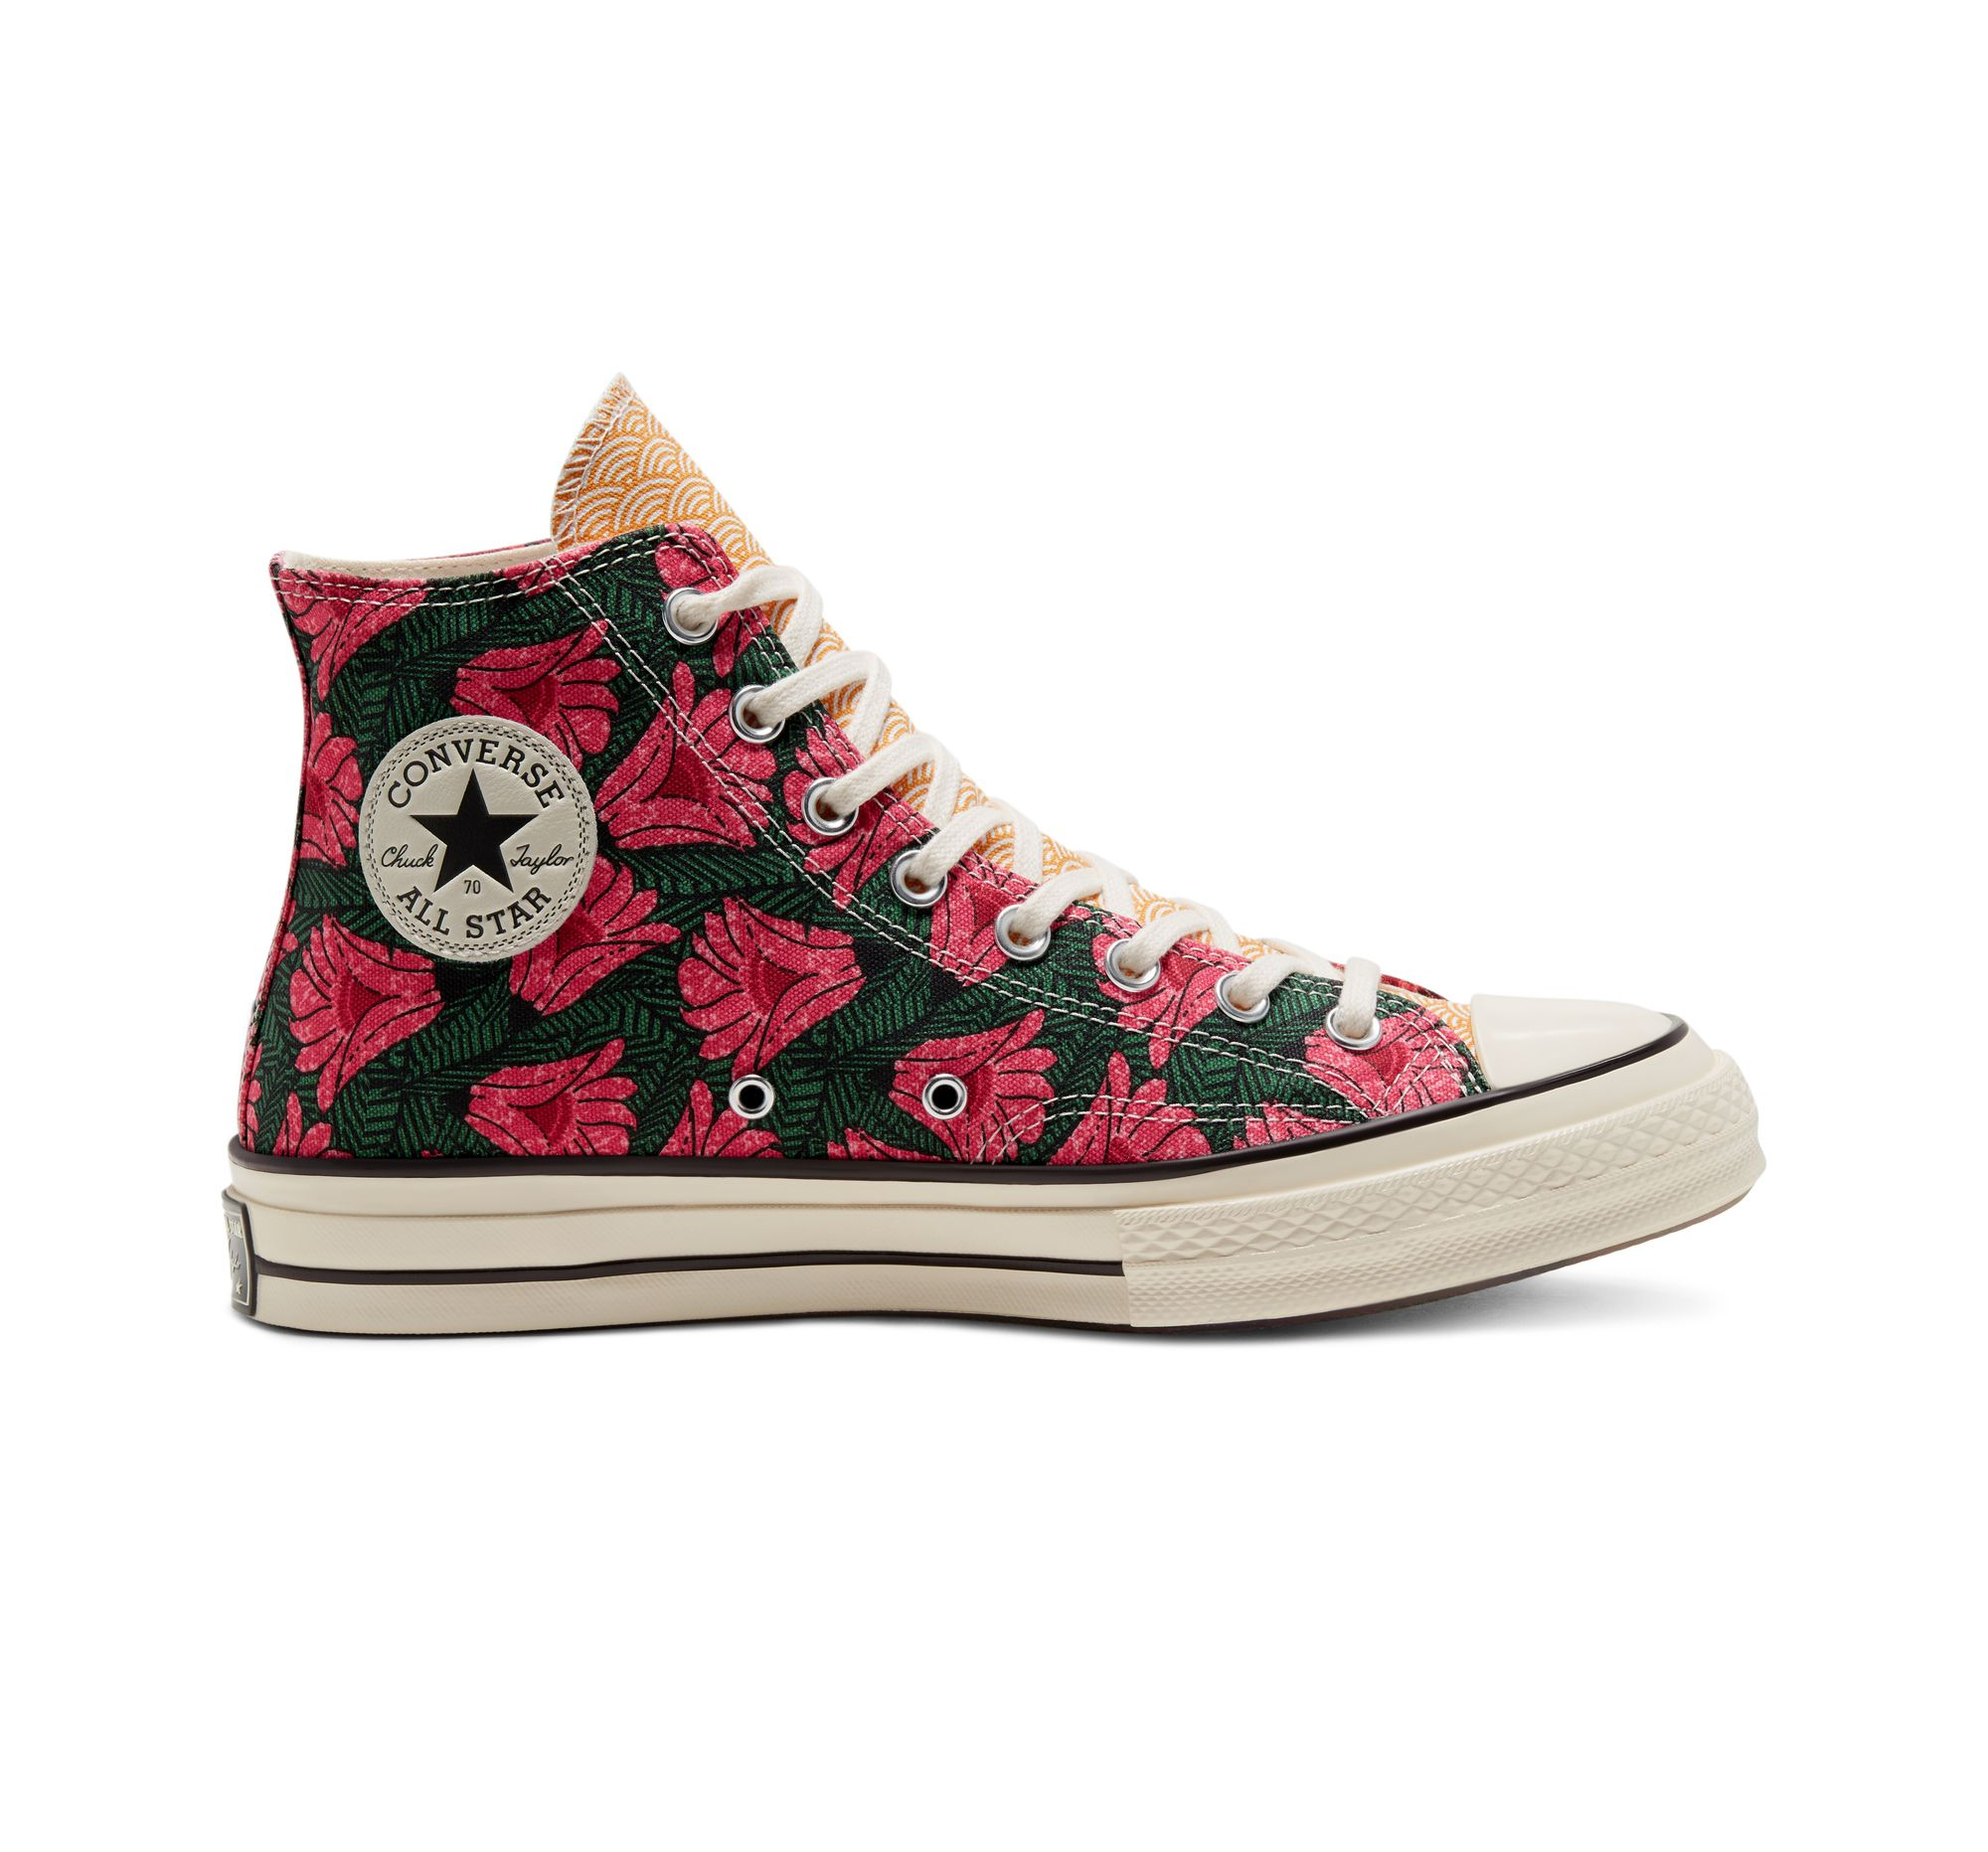 chuck 70 floral leather high top